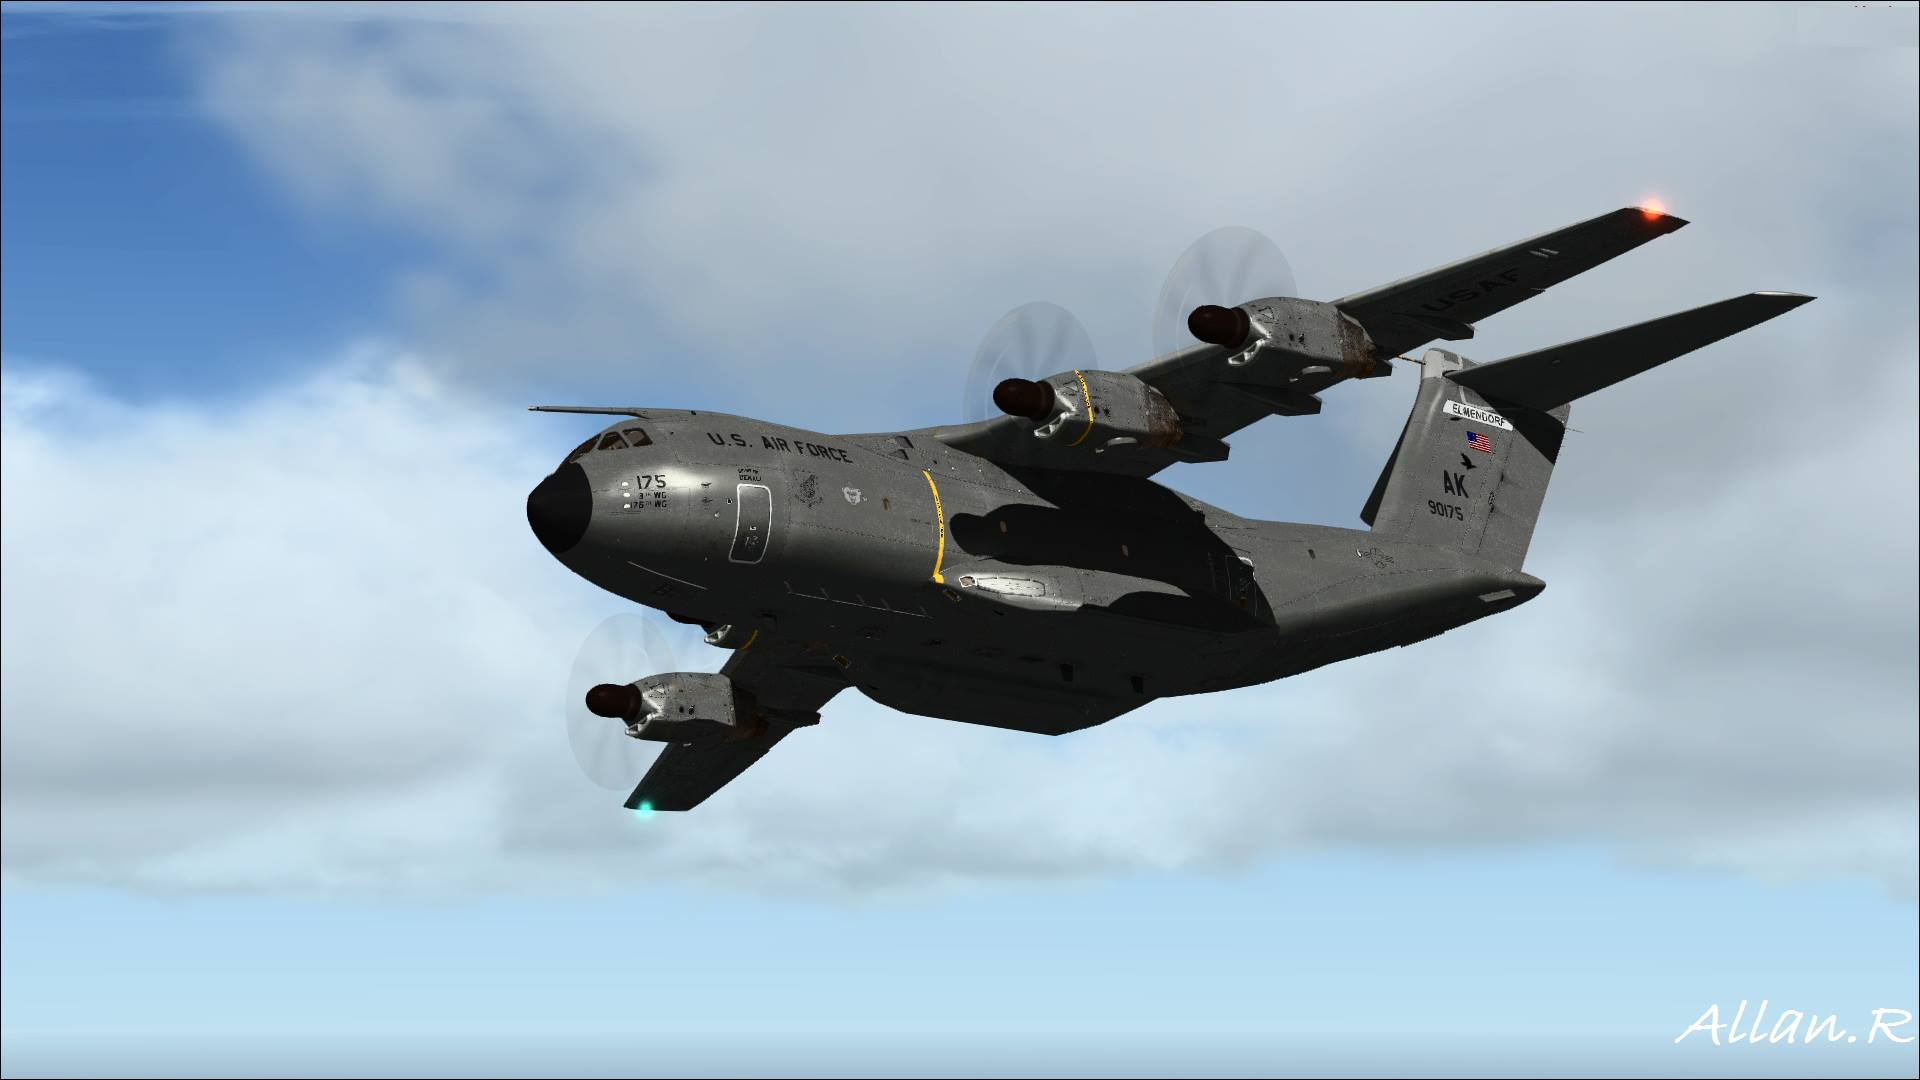 P3d how to open chaseplane